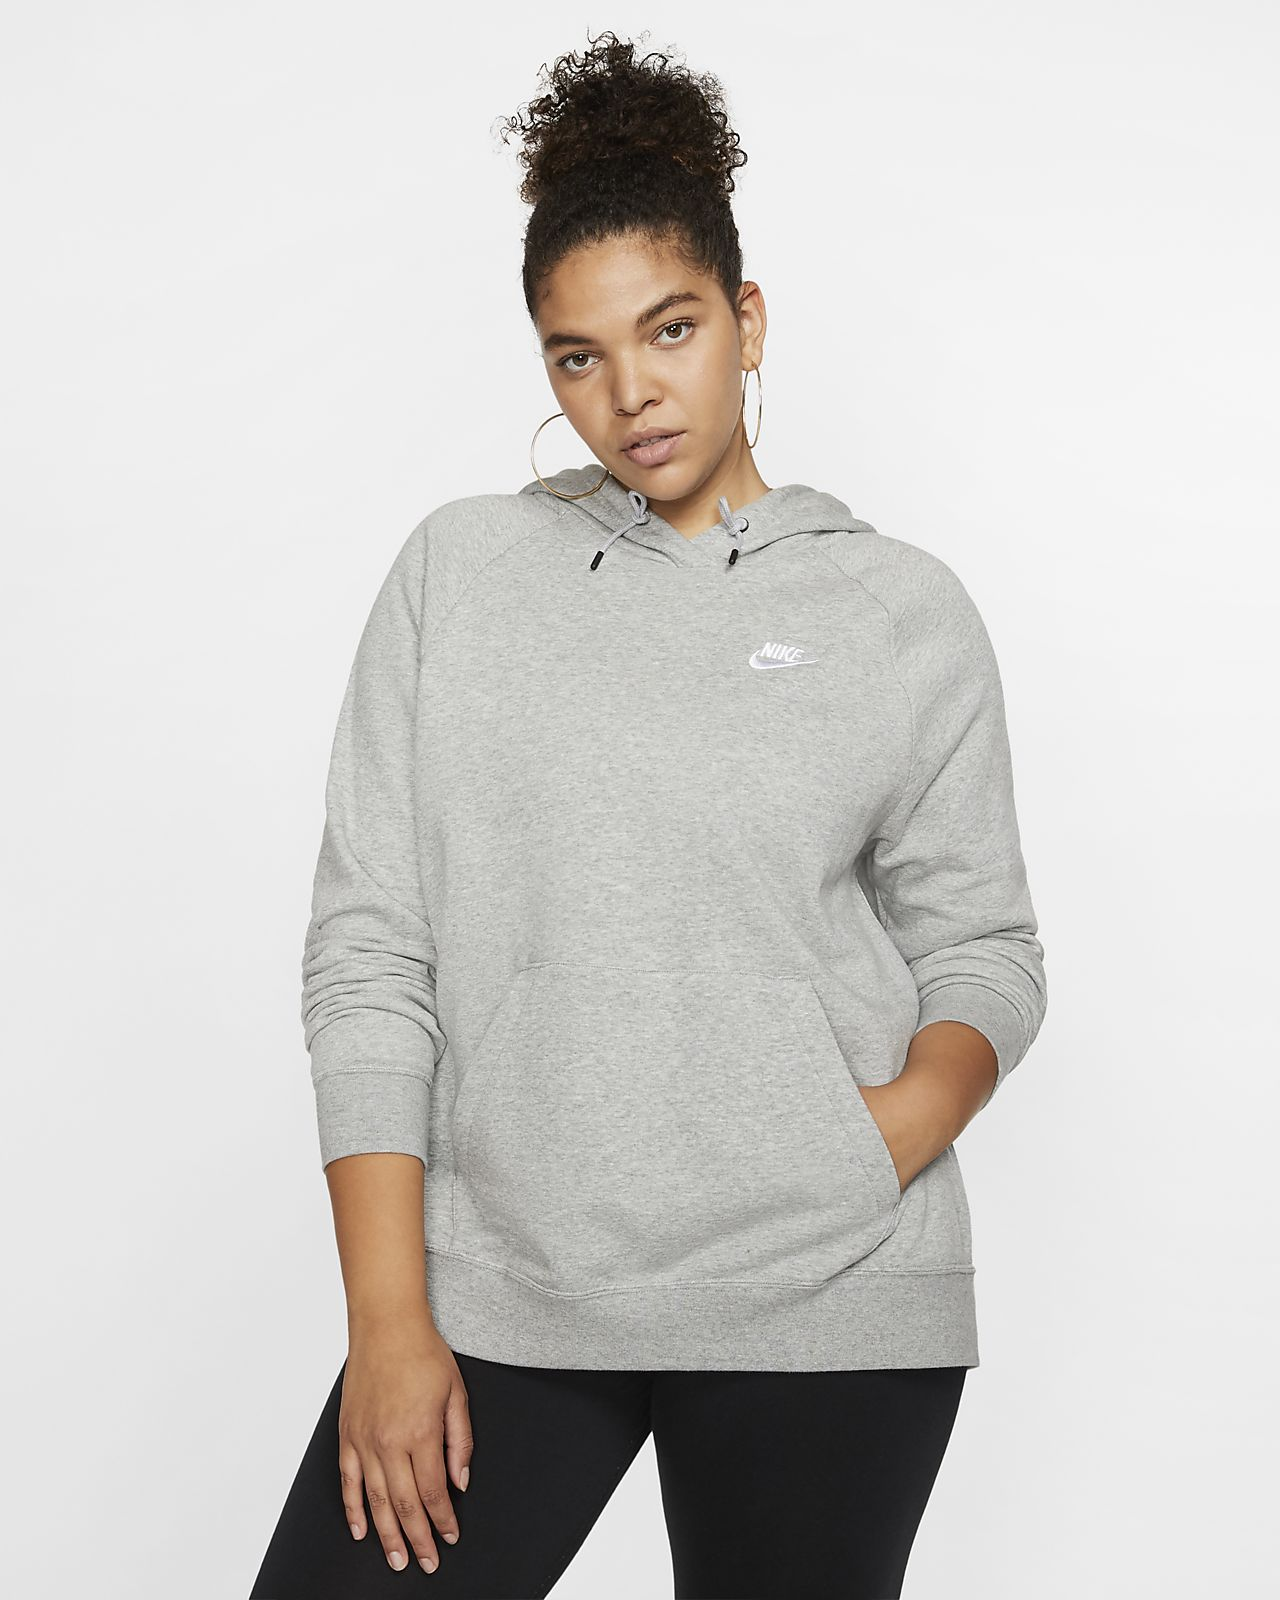 Nike Sneakers, Leggings, Sweatshirts, and More Are All an